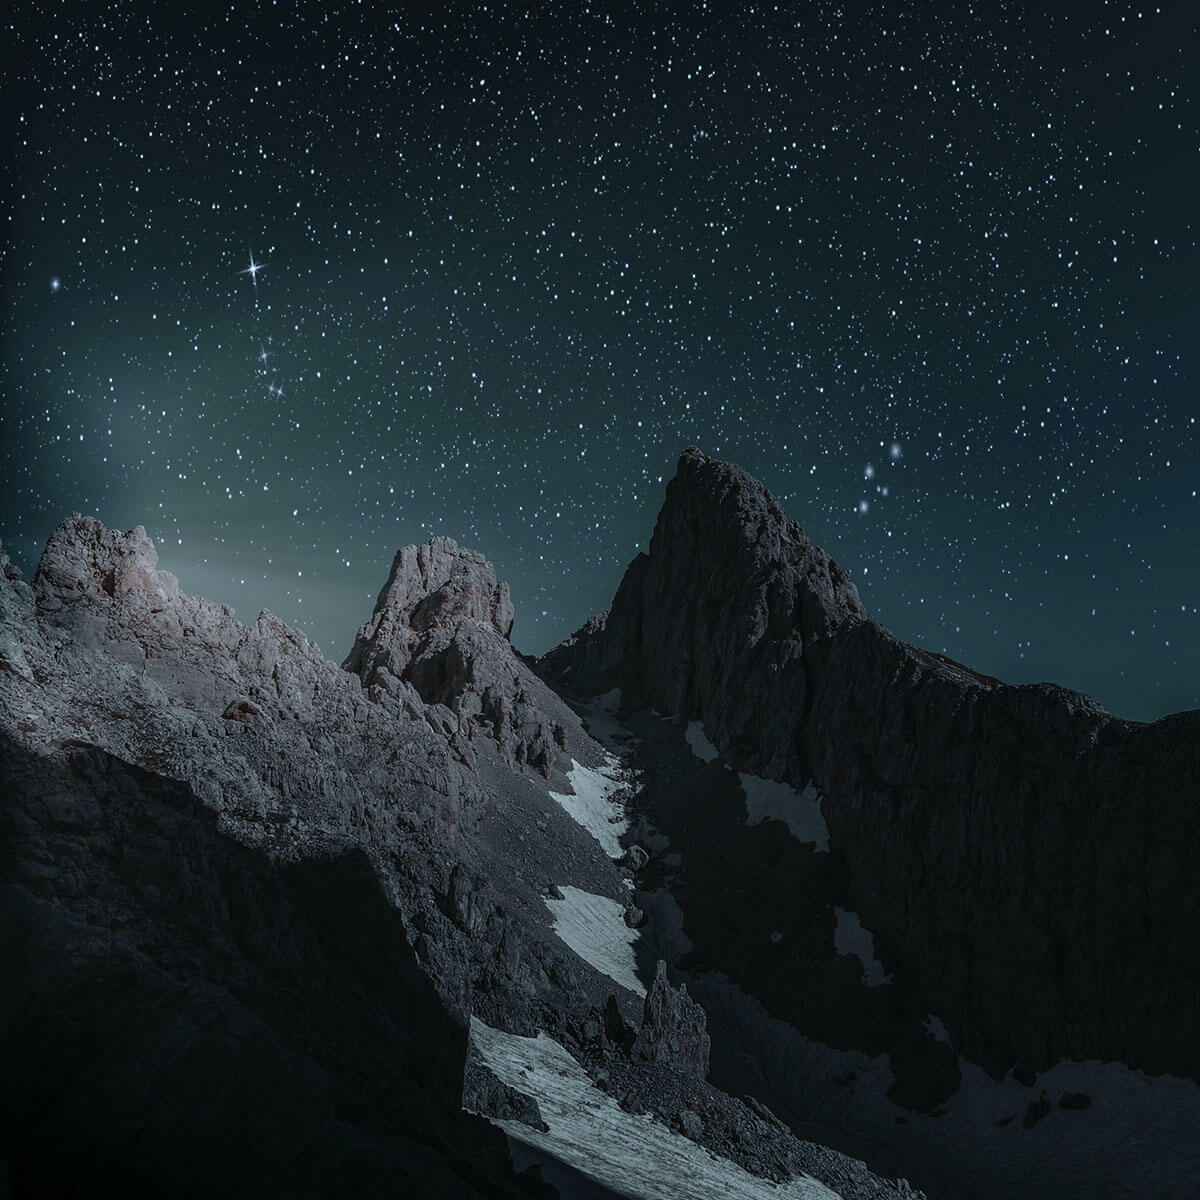 Mountains in front of starry sky